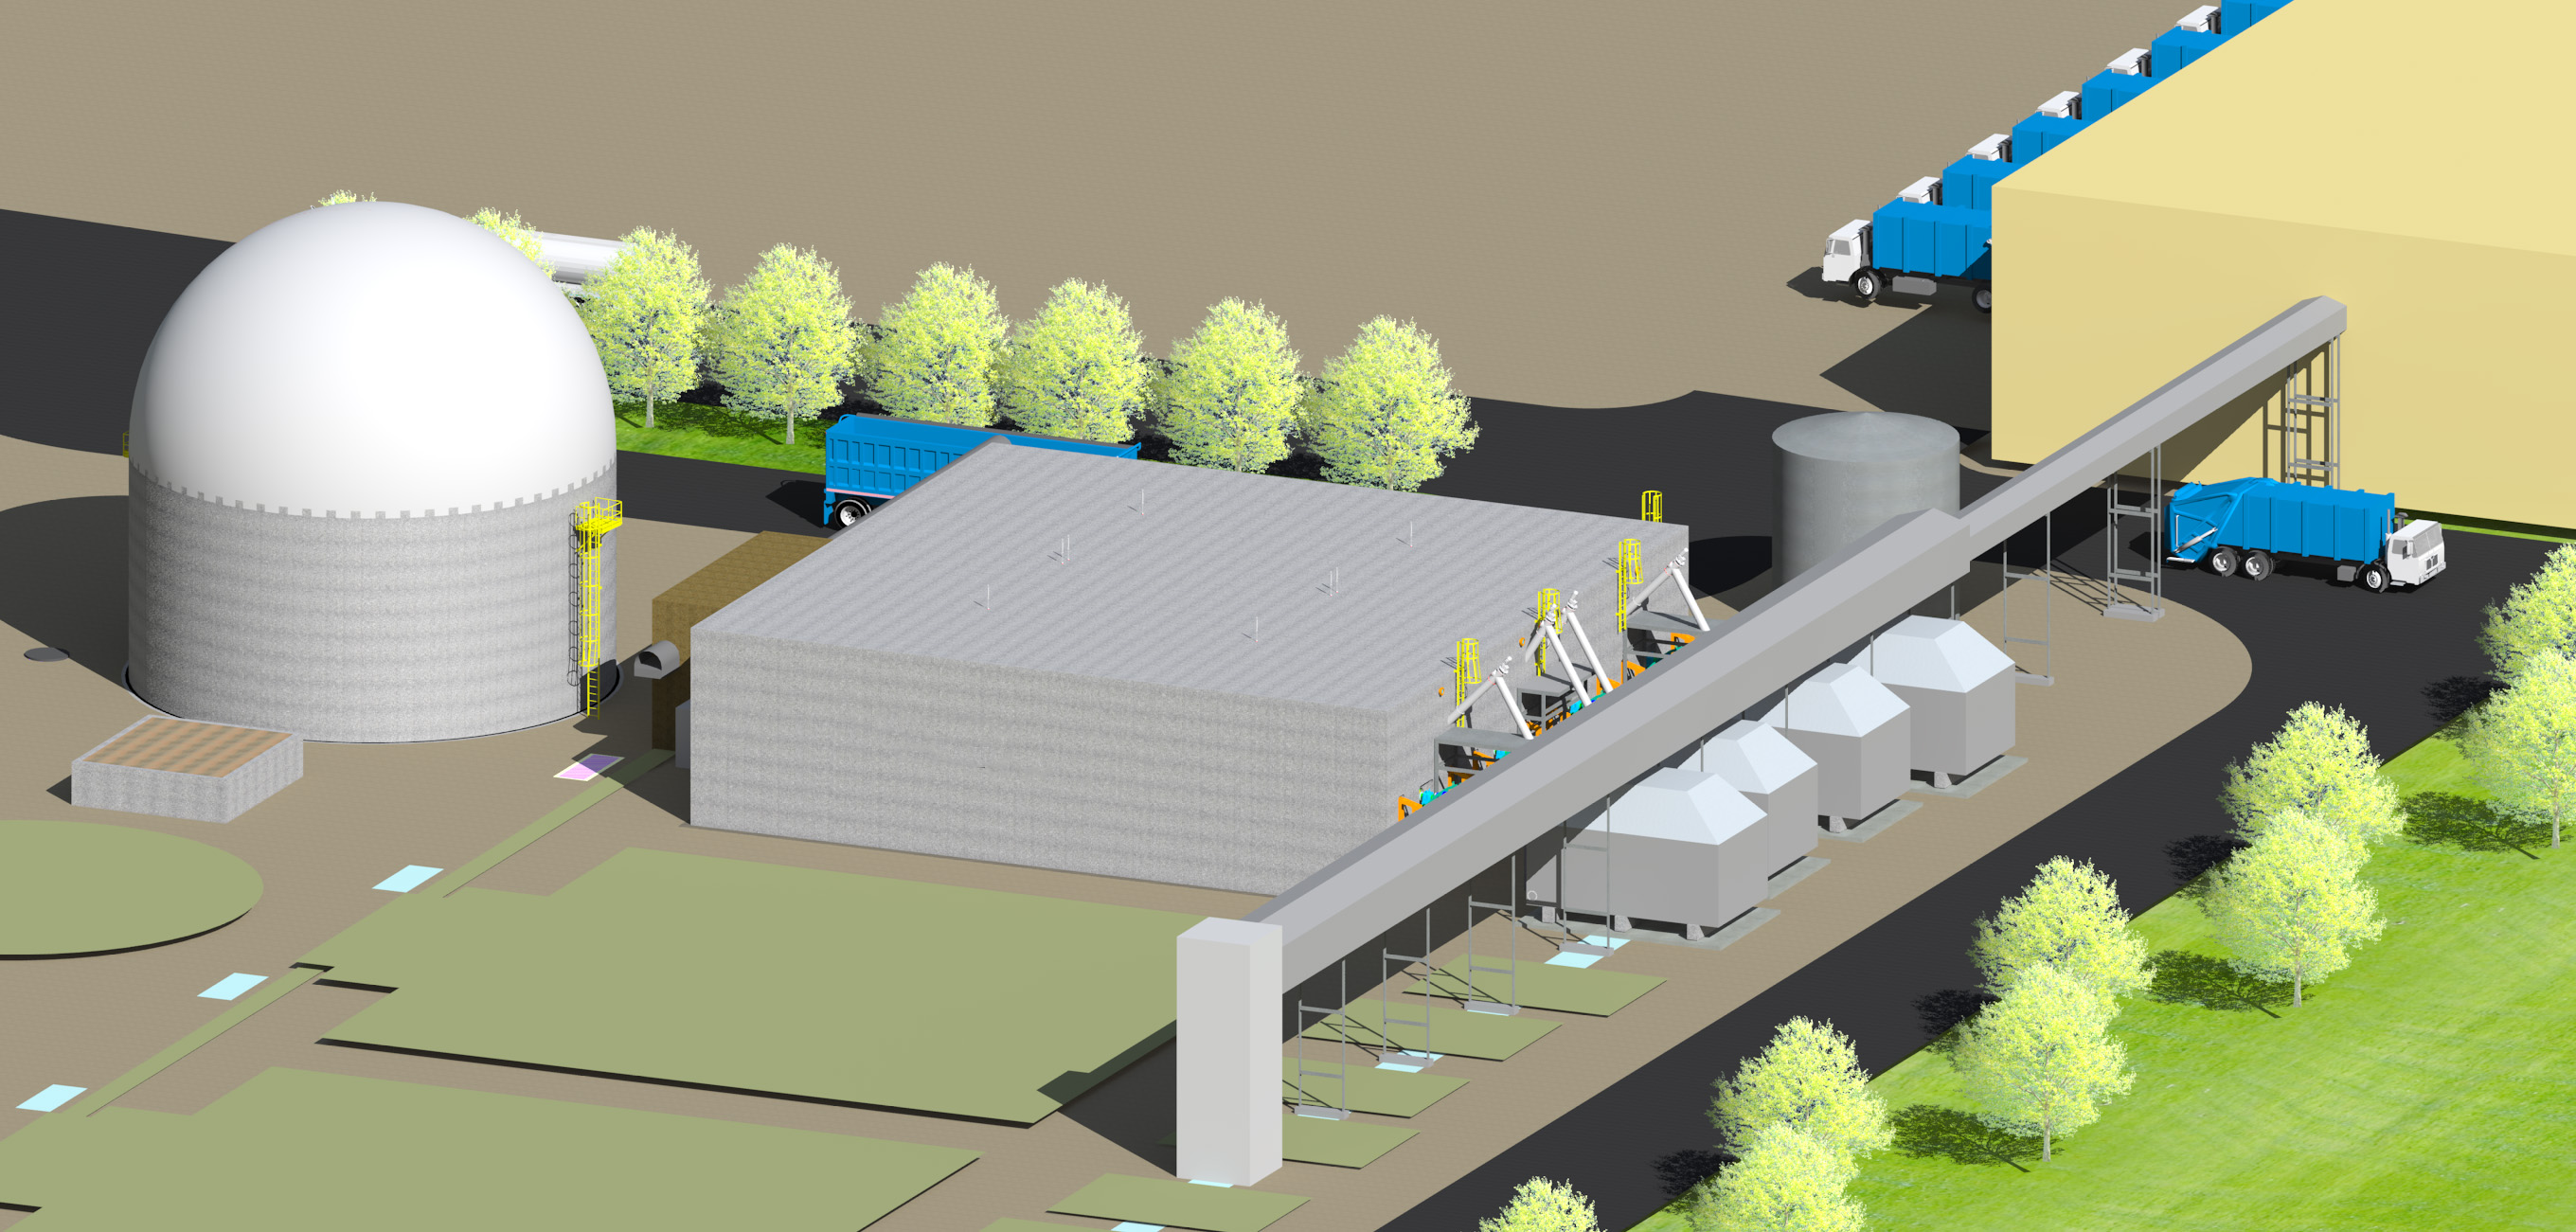 140305_View_of_CR-R_anaerobic_digestion_system_-_no_logo.jpg